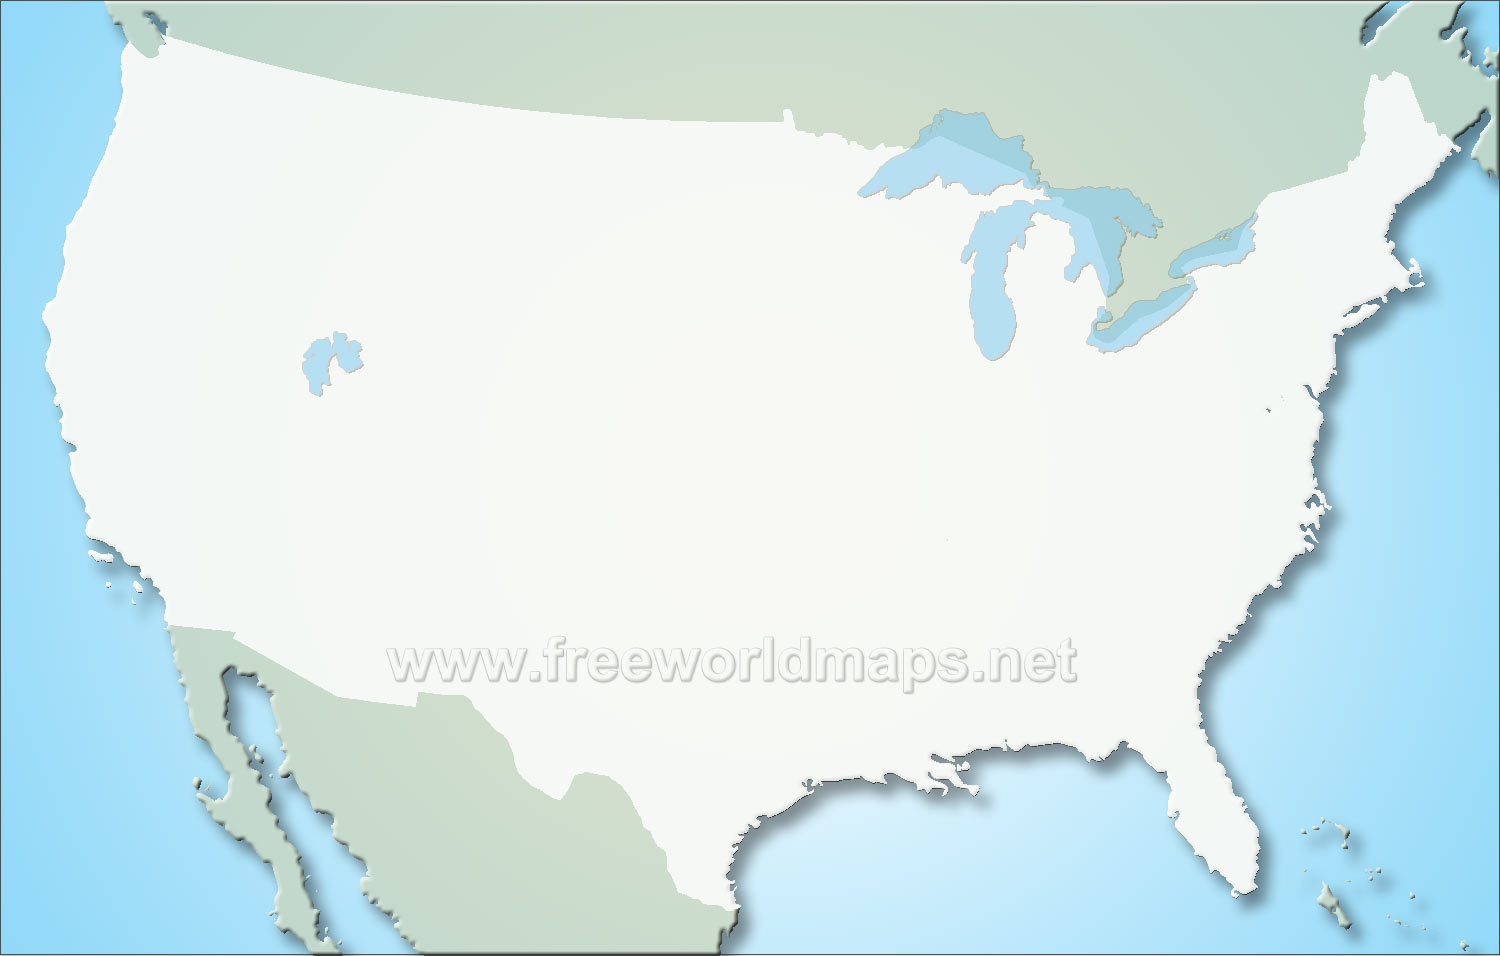 World us map clipart picture transparent Blank World Map United States By Freeworldmaps Net Us   World Map ... picture transparent